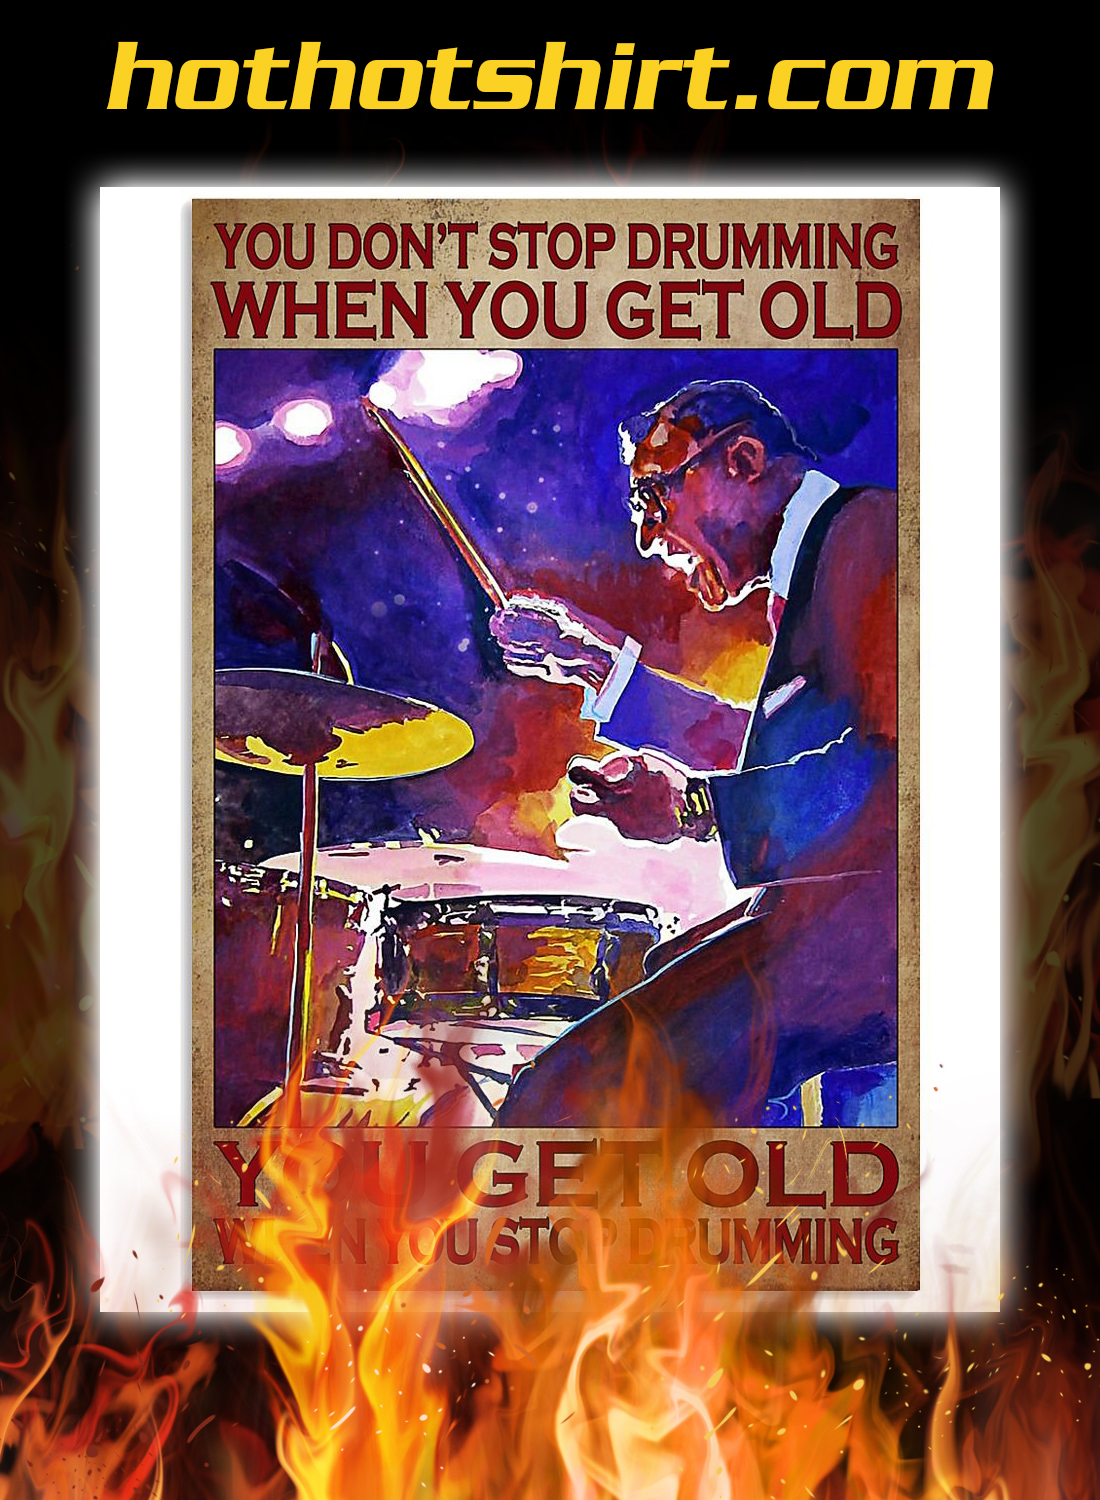 Old man You don't stop drumming when you get old poster 1